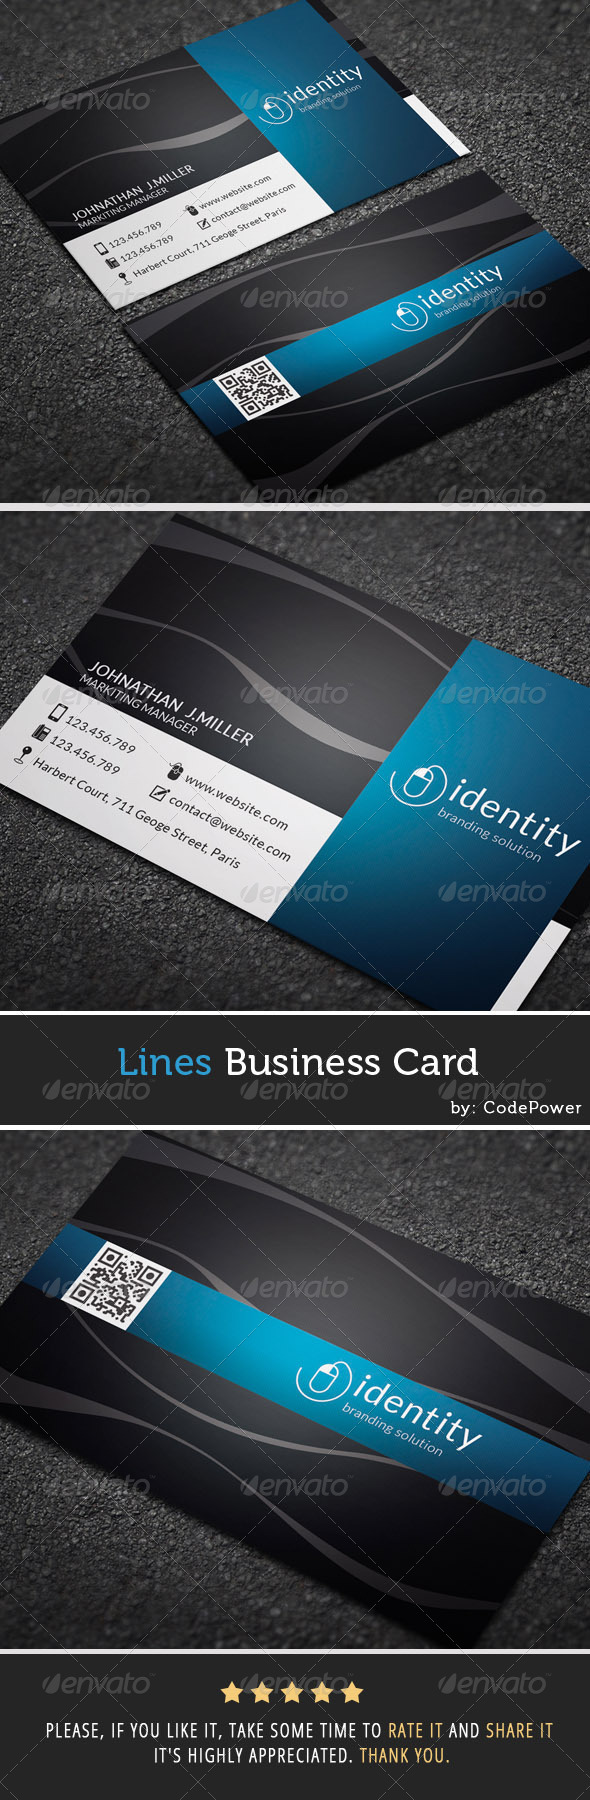 GraphicRiver Lines Business Card 7348741